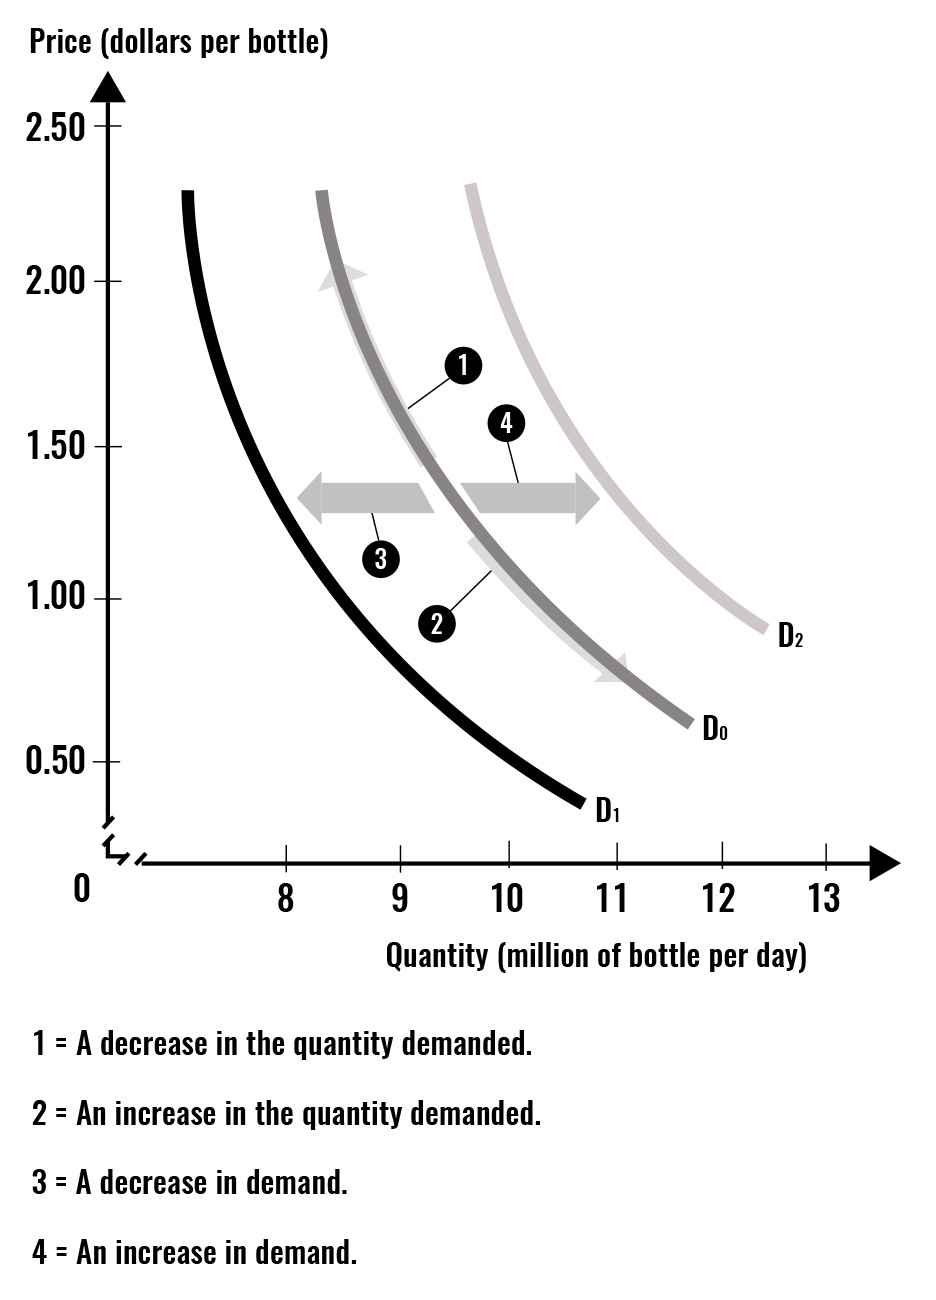 The graph summarizes demand shifters leading to an increase or decrease in demand. In addition, it emphasizes that what causes a movement along the demand curve is the change in the own price of the good or service.